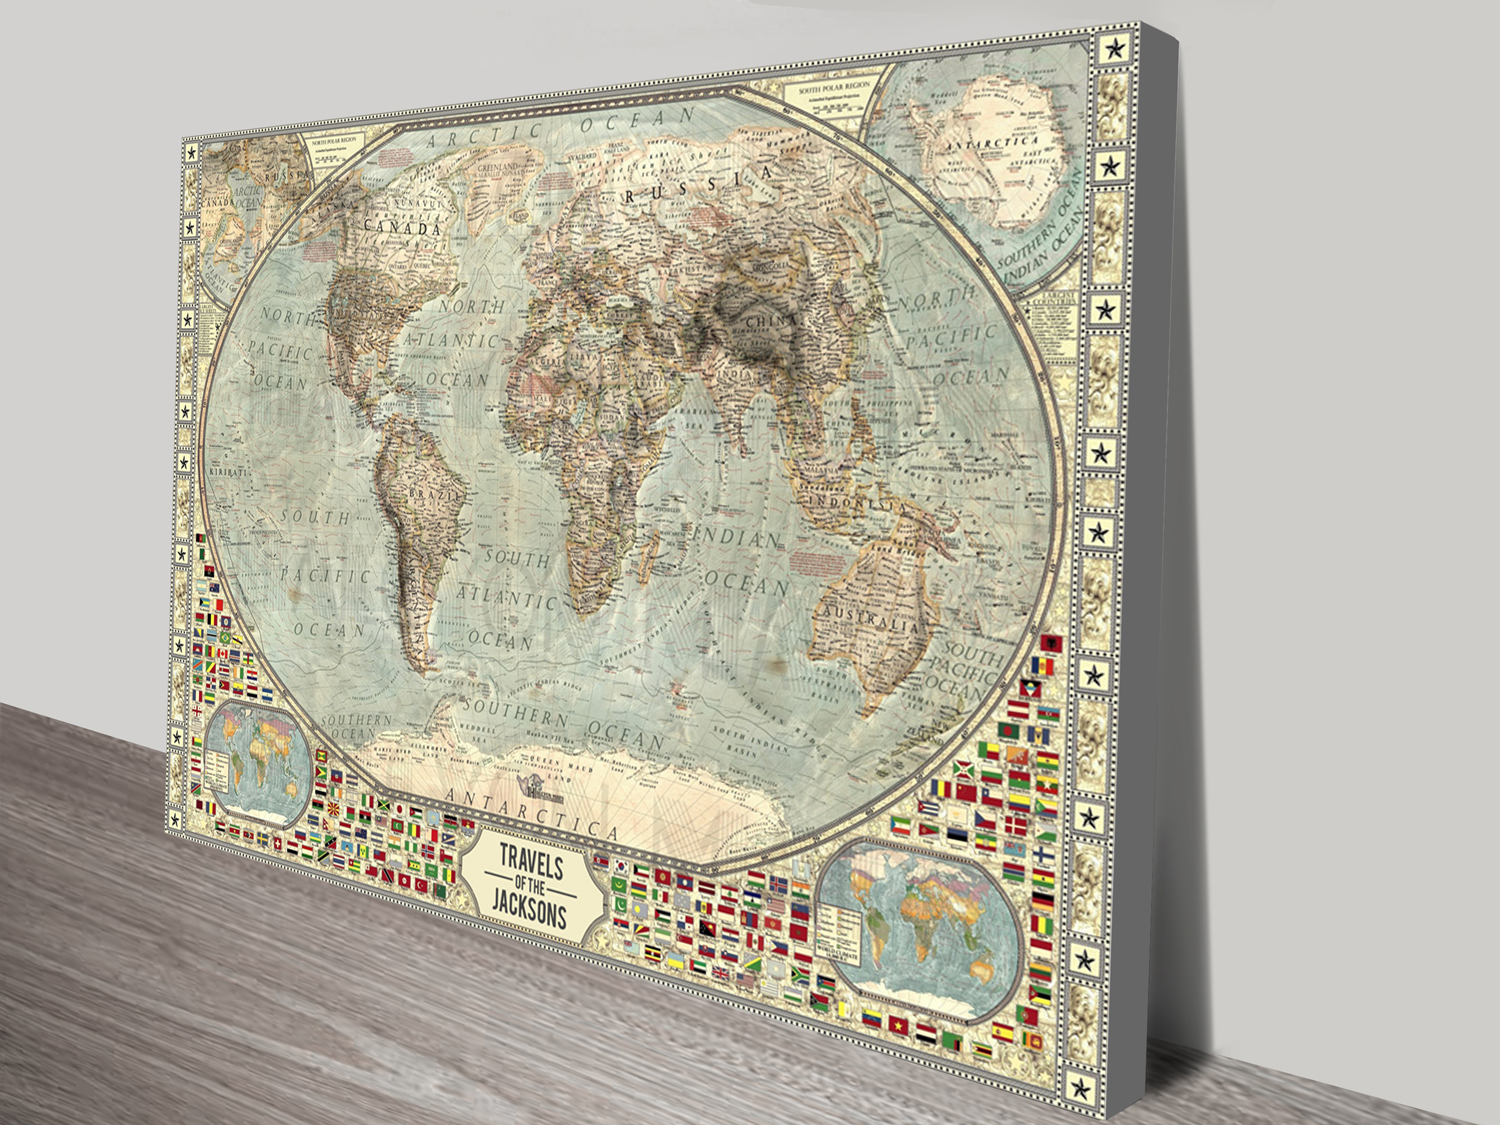 Customised Vintage Push Pin World Map Canvas Print | Push Pin World Map – Vintage